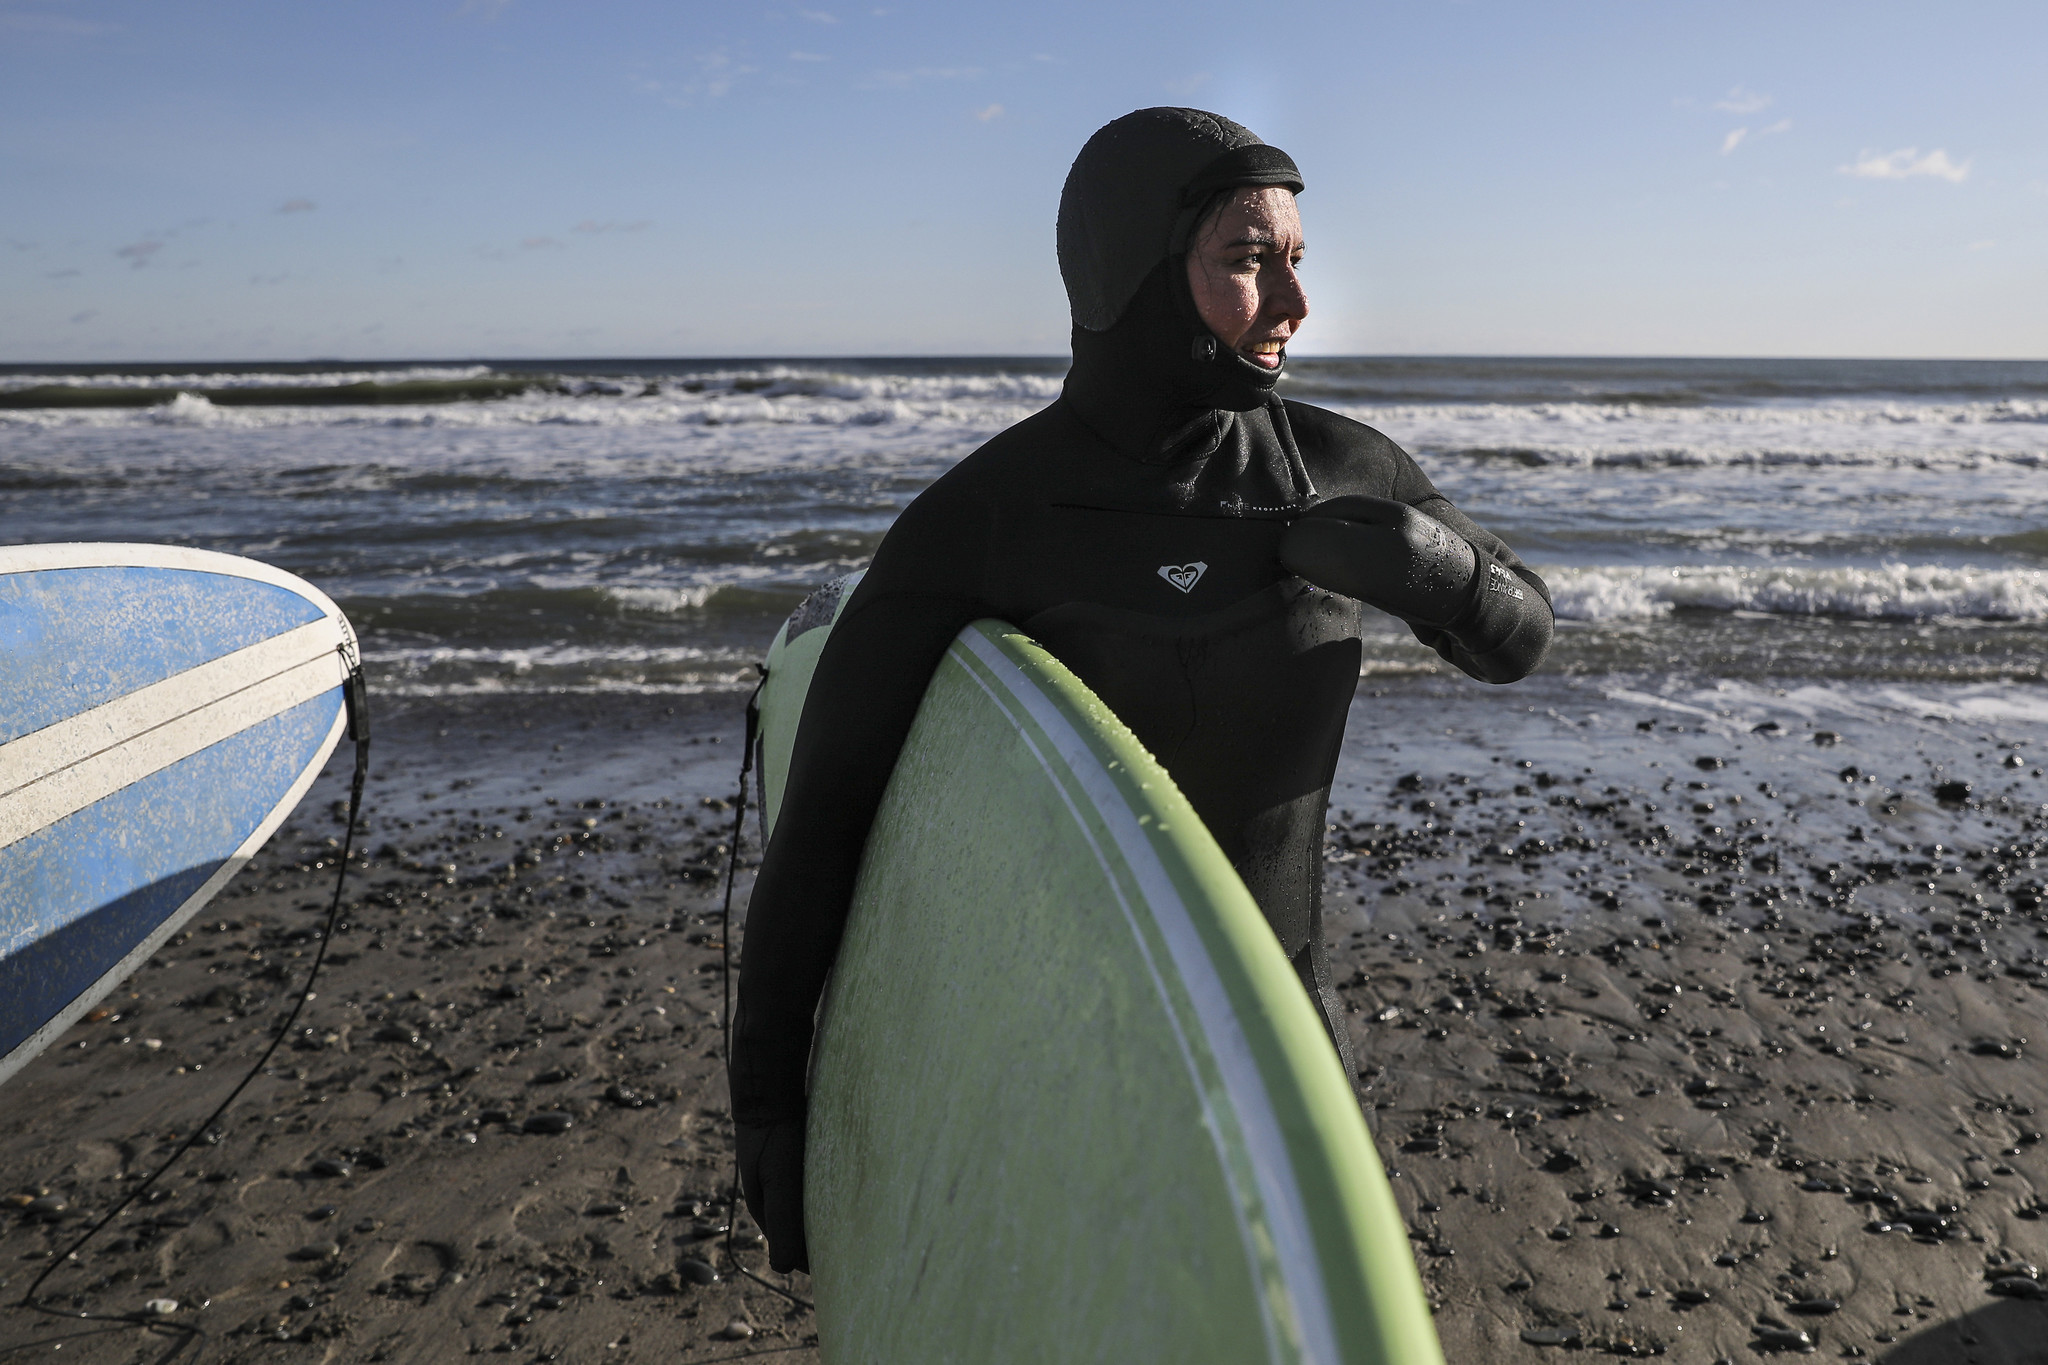 Tulsi Gabbard goes surfing in chilly New Hampshire